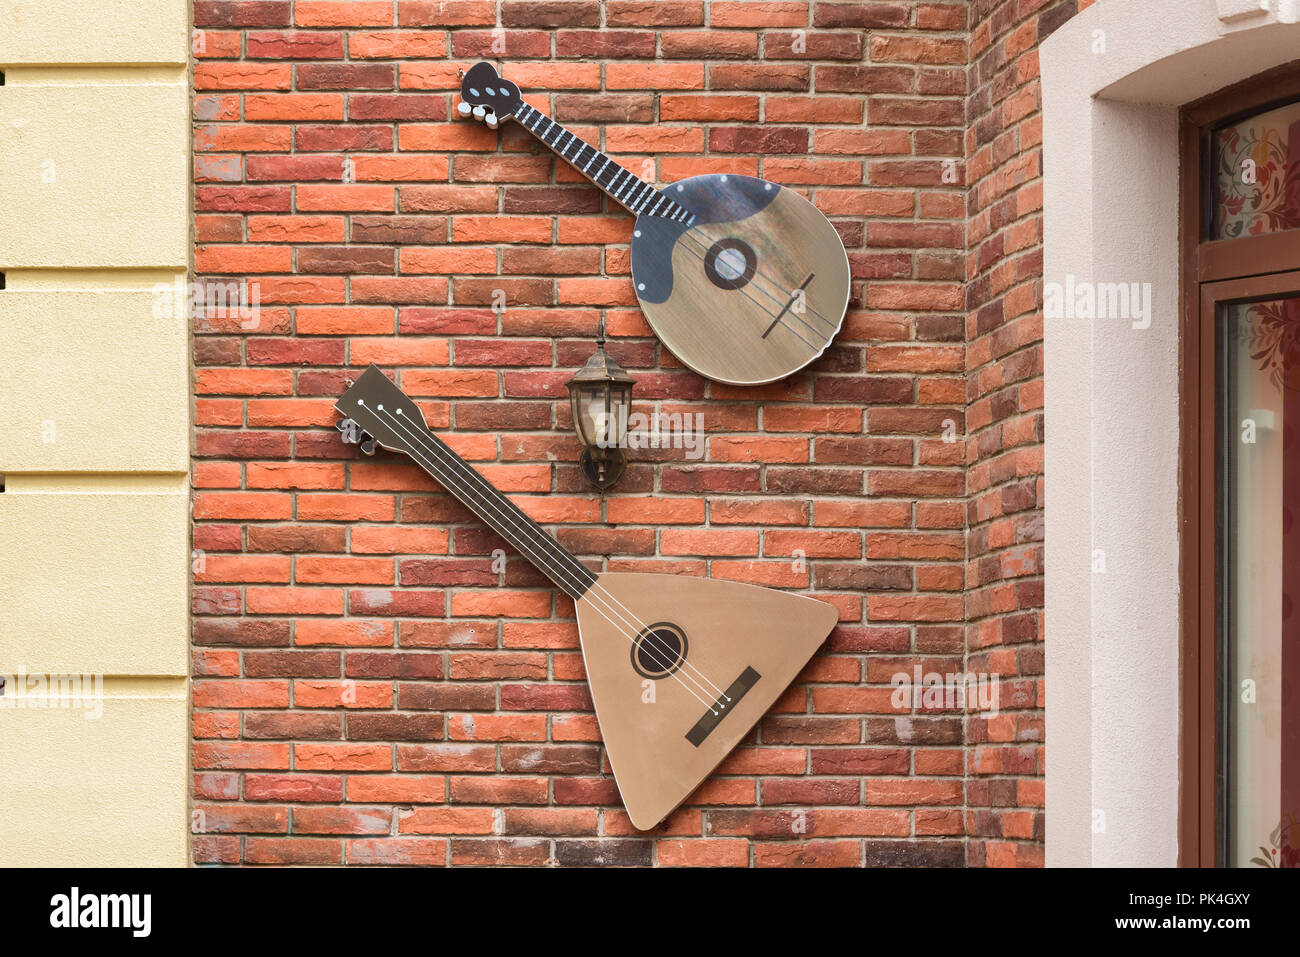 Musical instrument balalaika on the wall. Scenery on the wall of the building - Stock Image